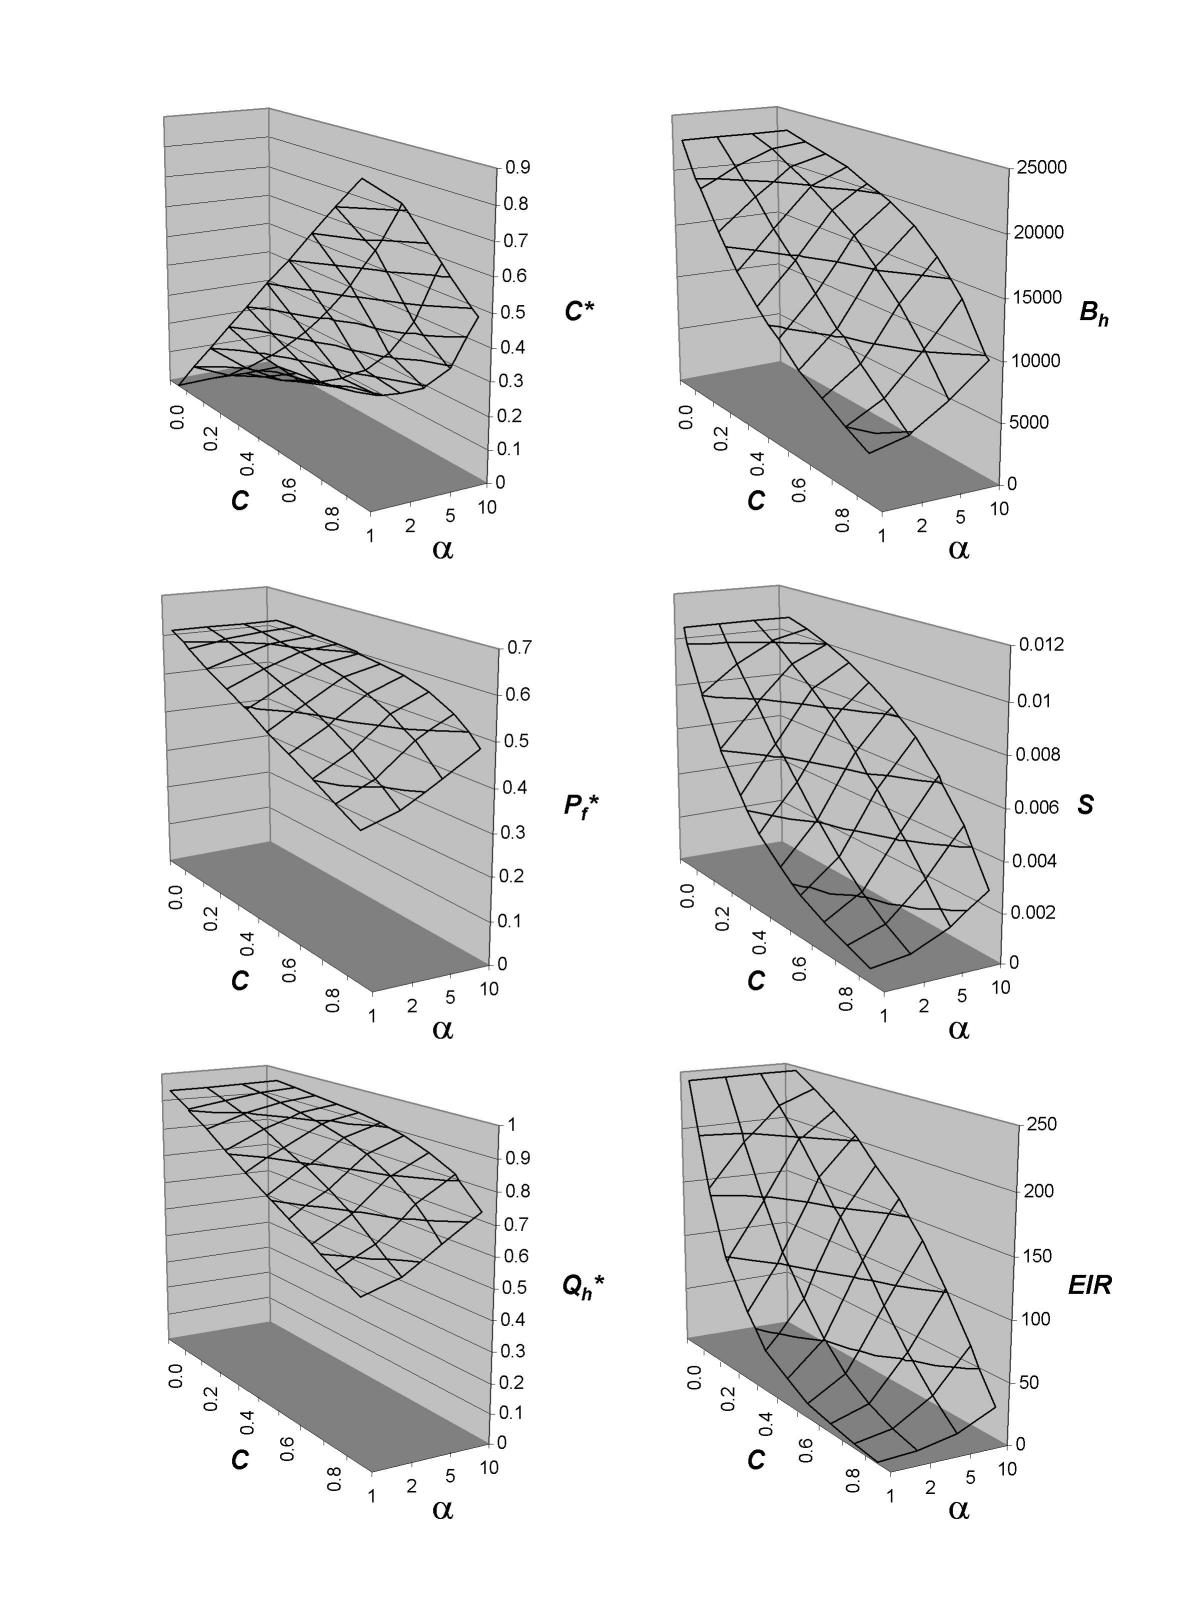 http://static-content.springer.com/image/art%3A10.1186%2F1475-2875-1-8/MediaObjects/12936_2002_Article_8_Fig1_HTML.jpg